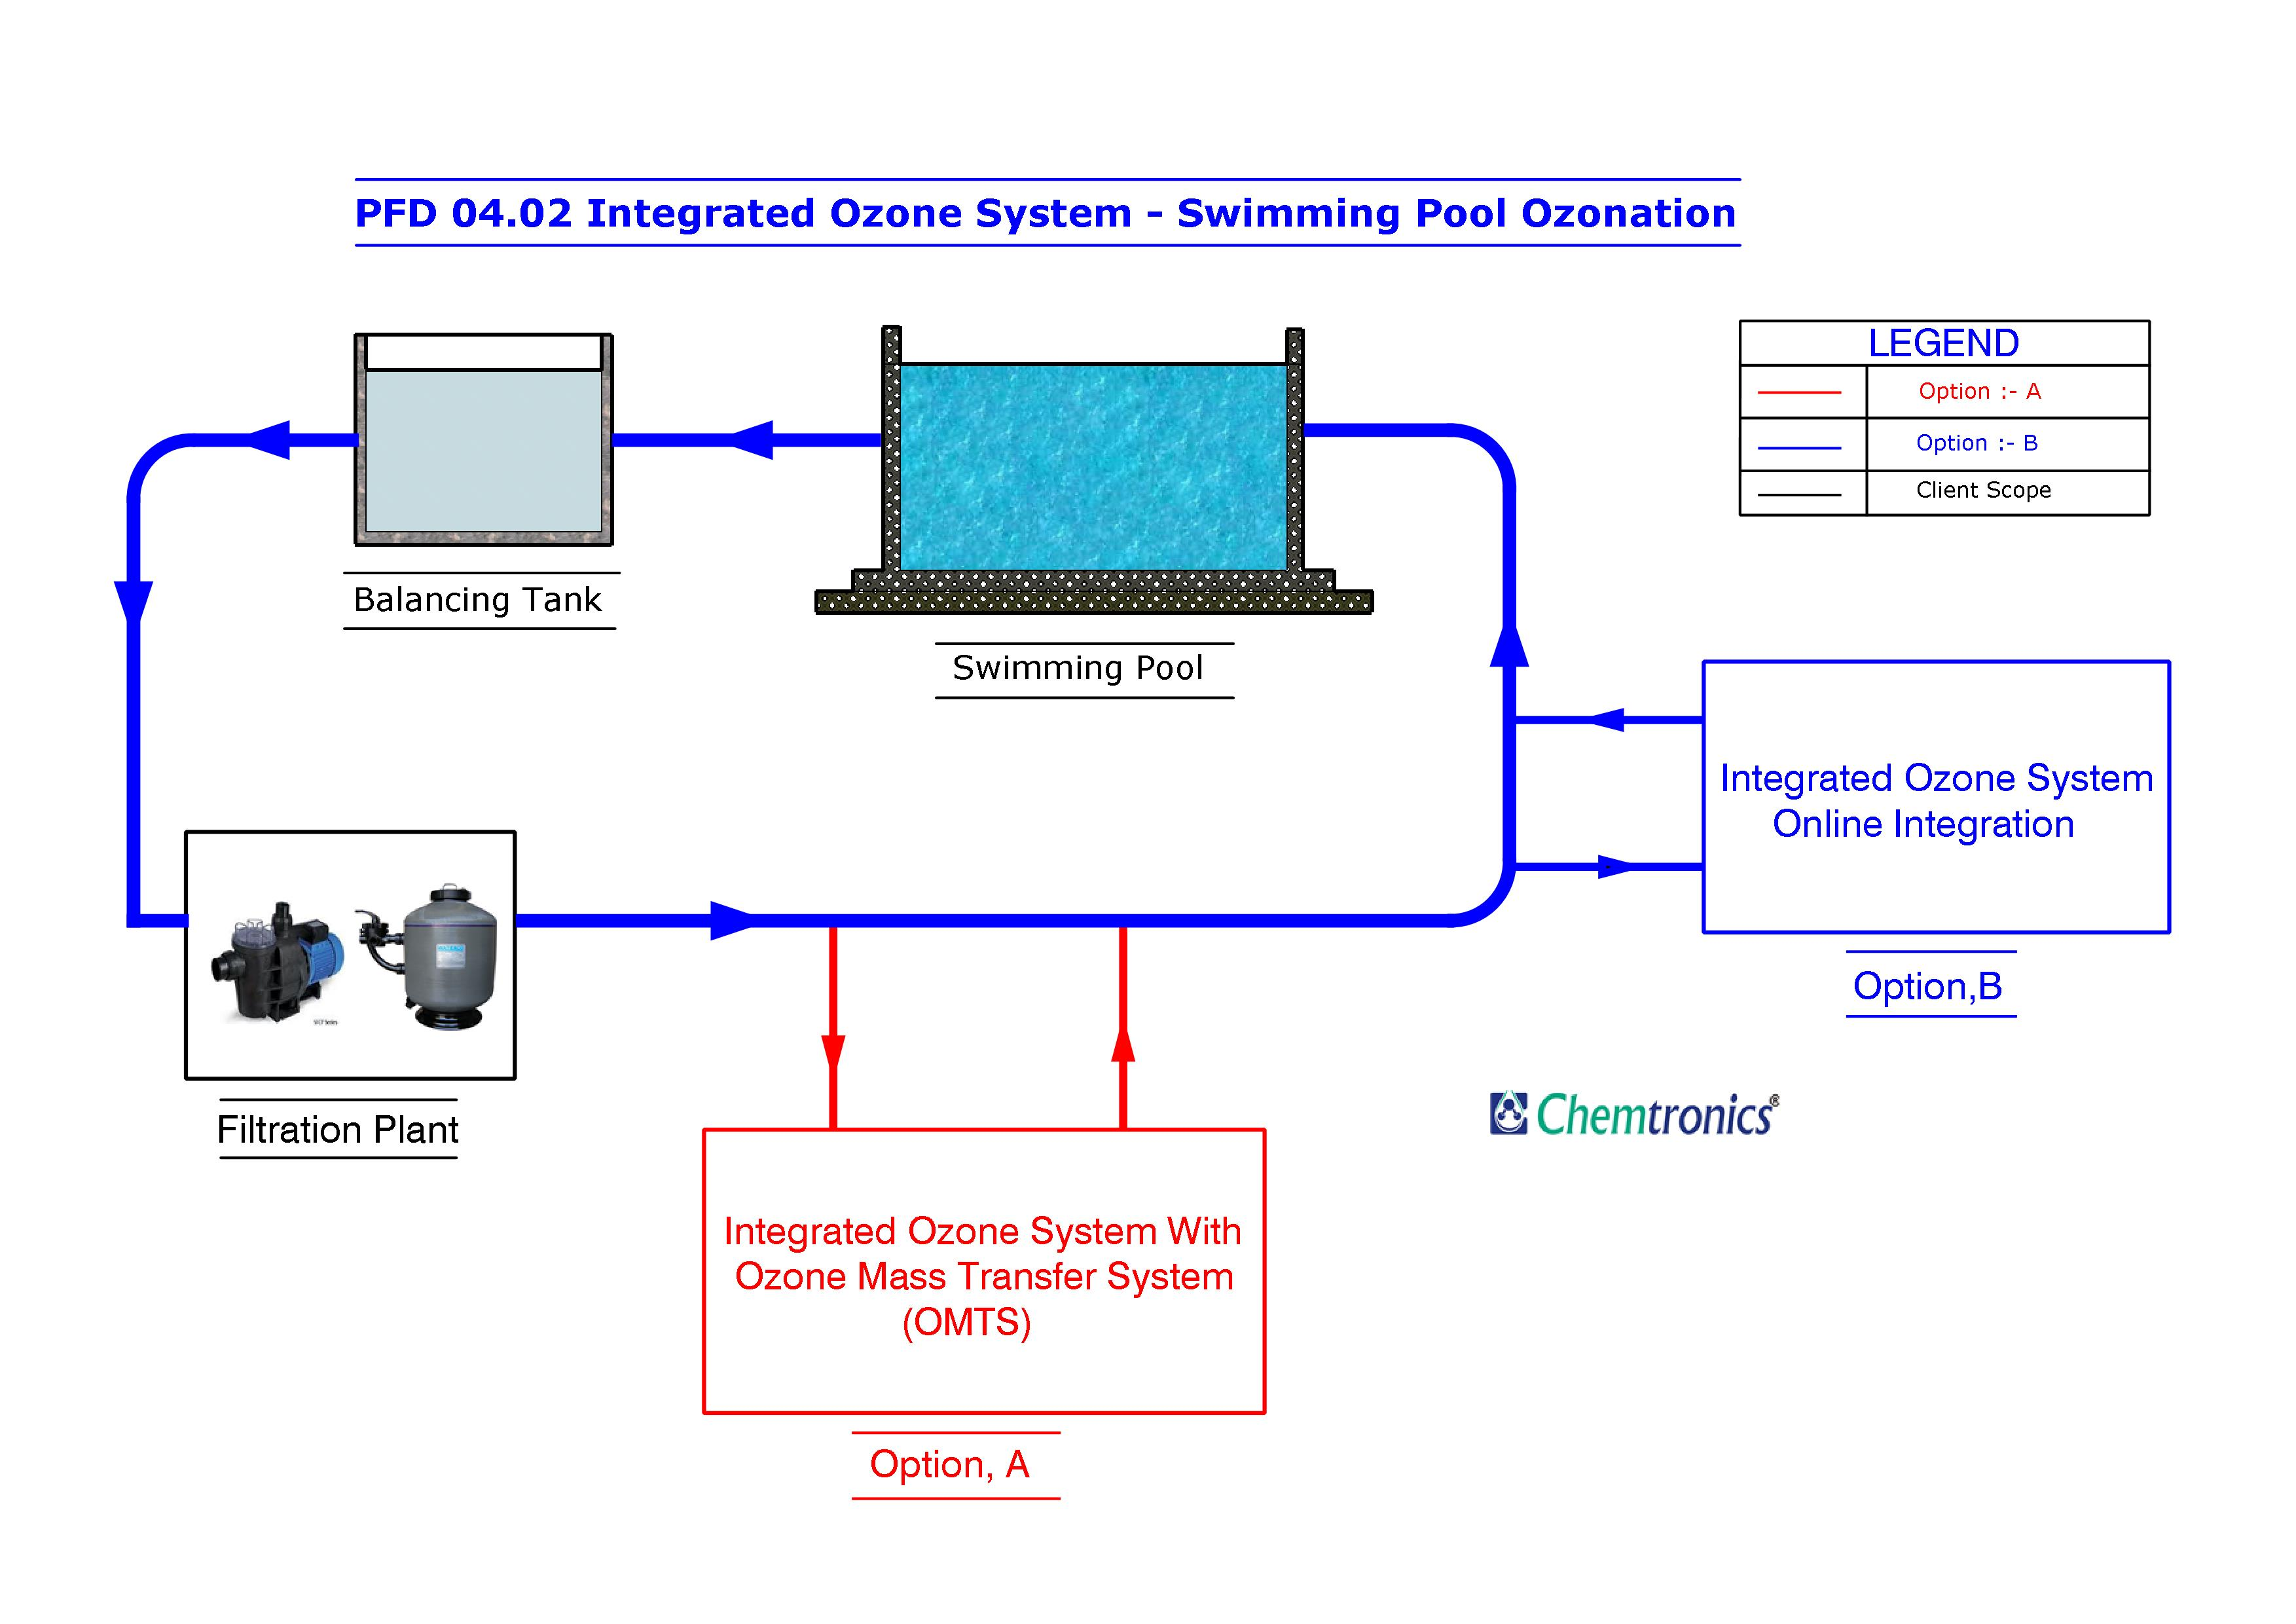 ics planning cycle diagram acura integra speaker wiring ozonation process flow diagrams pfd